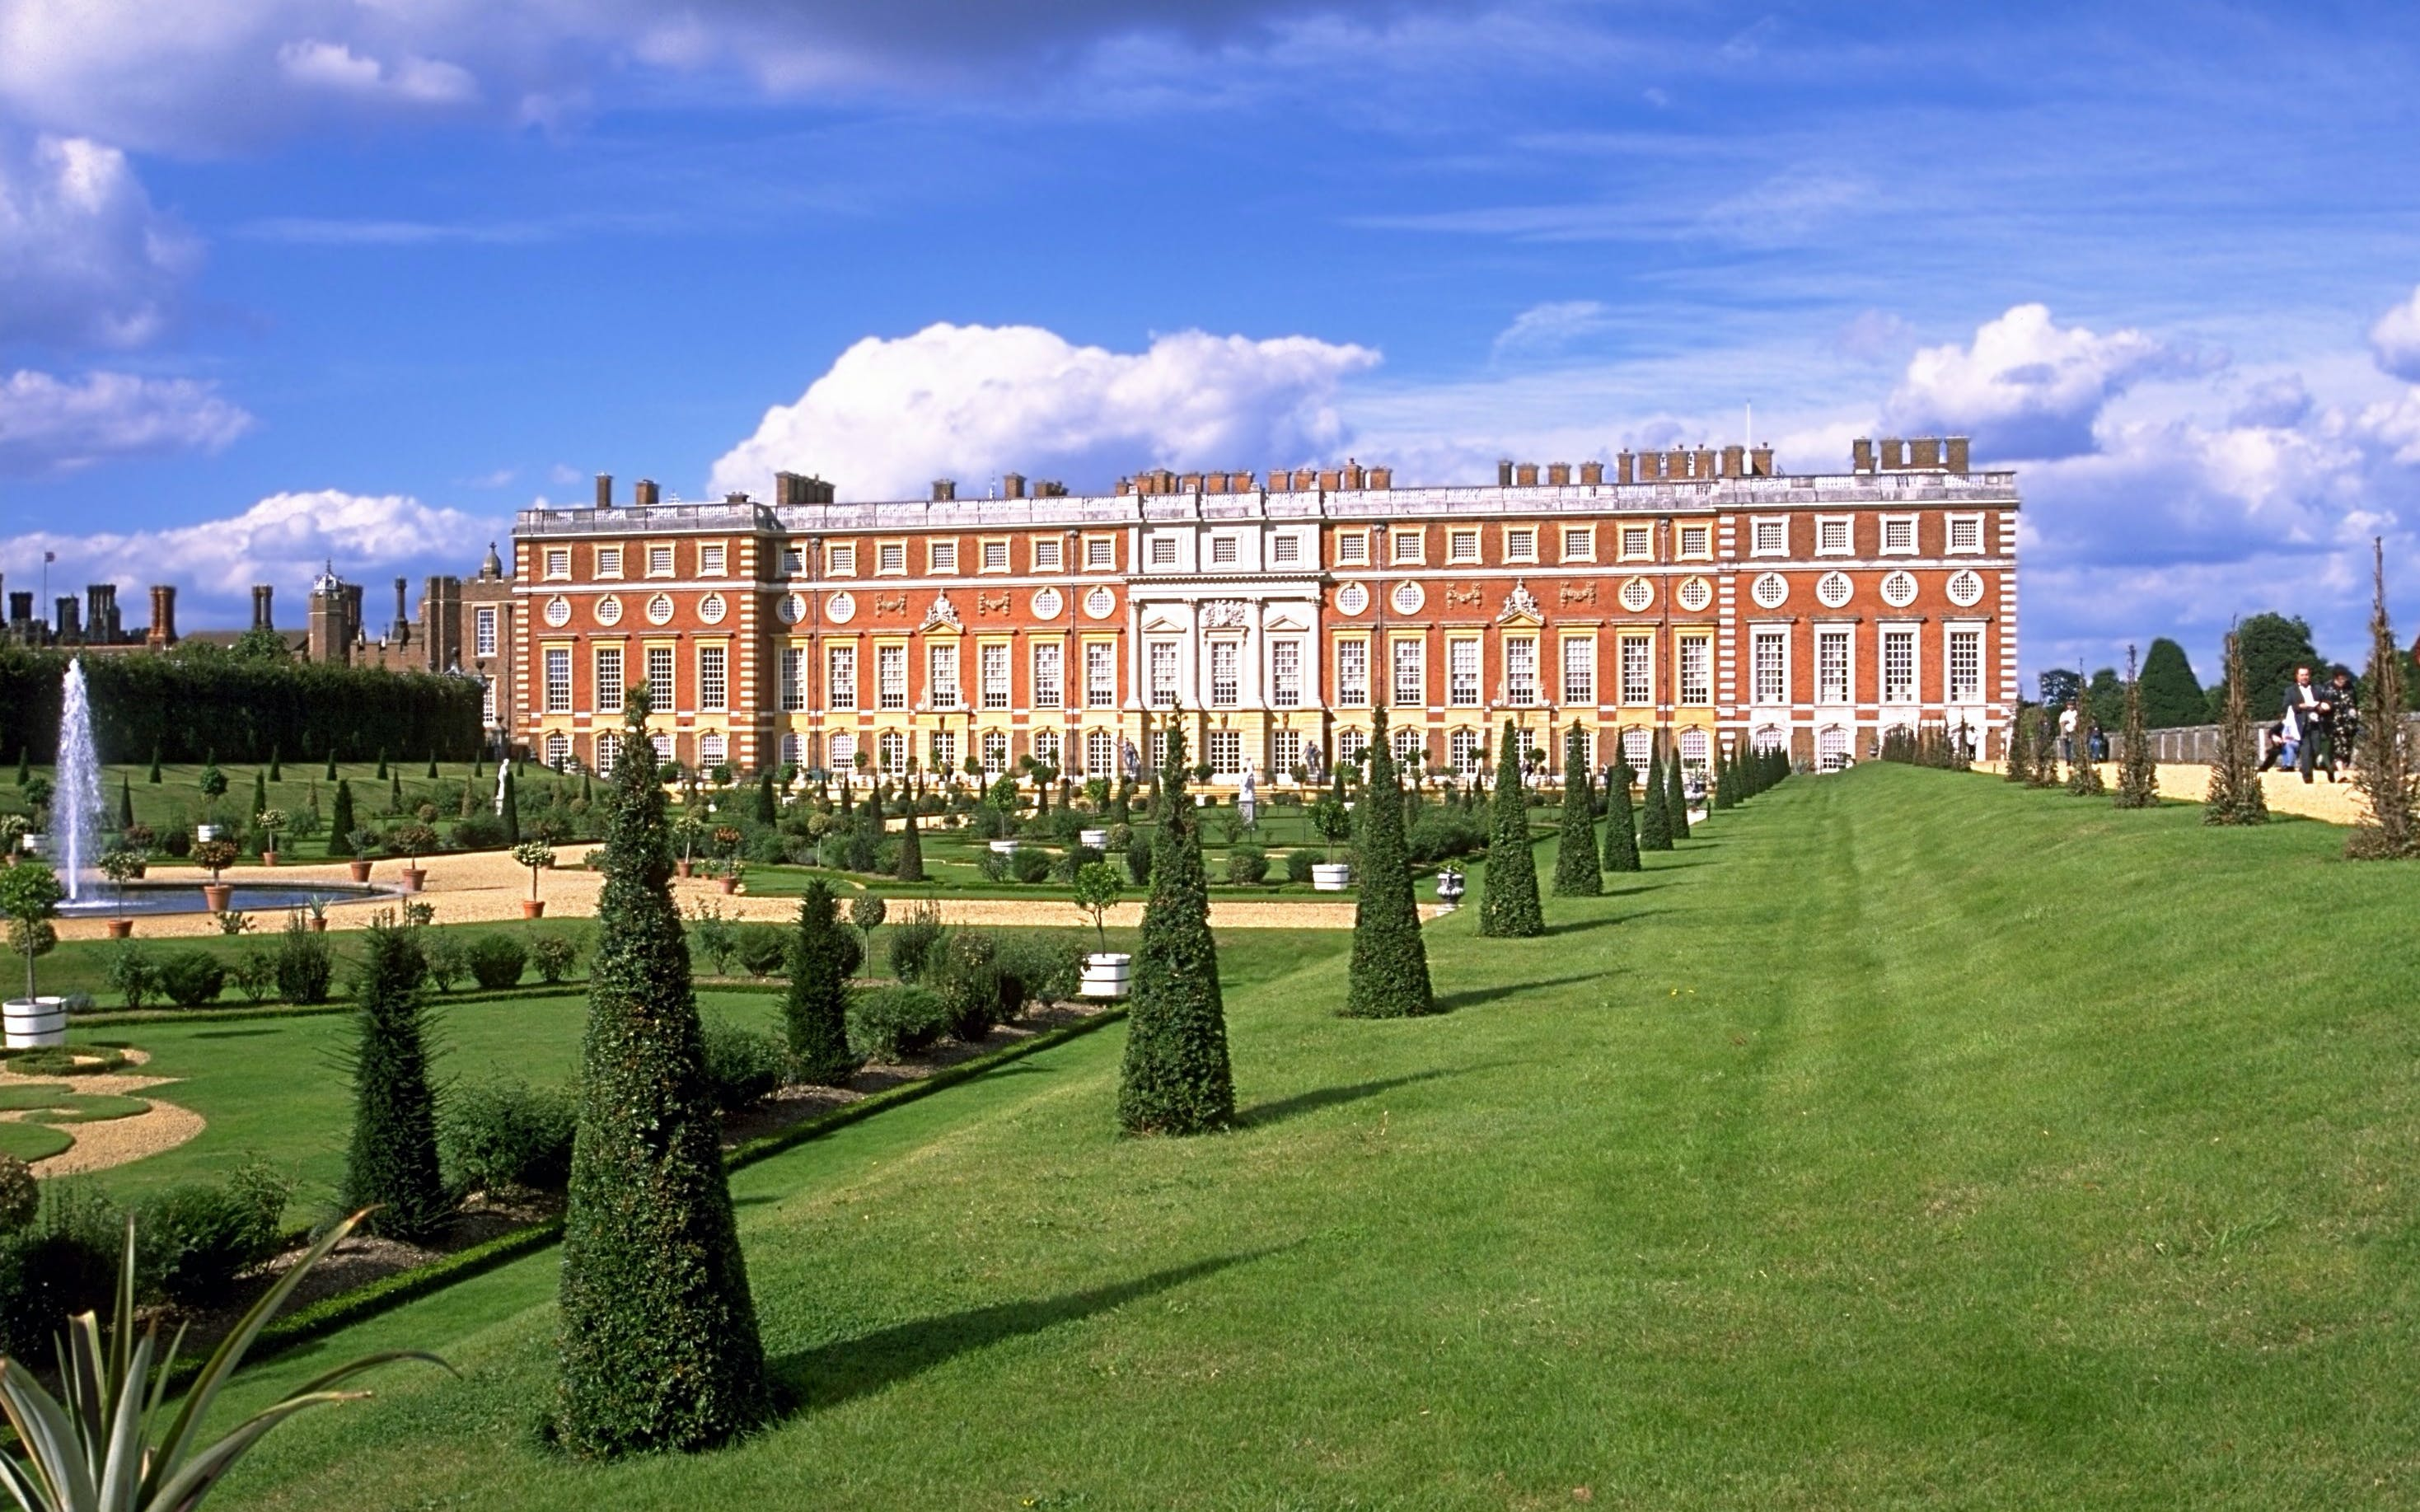 stonehenge, bath and hampton court palace tour from london-1